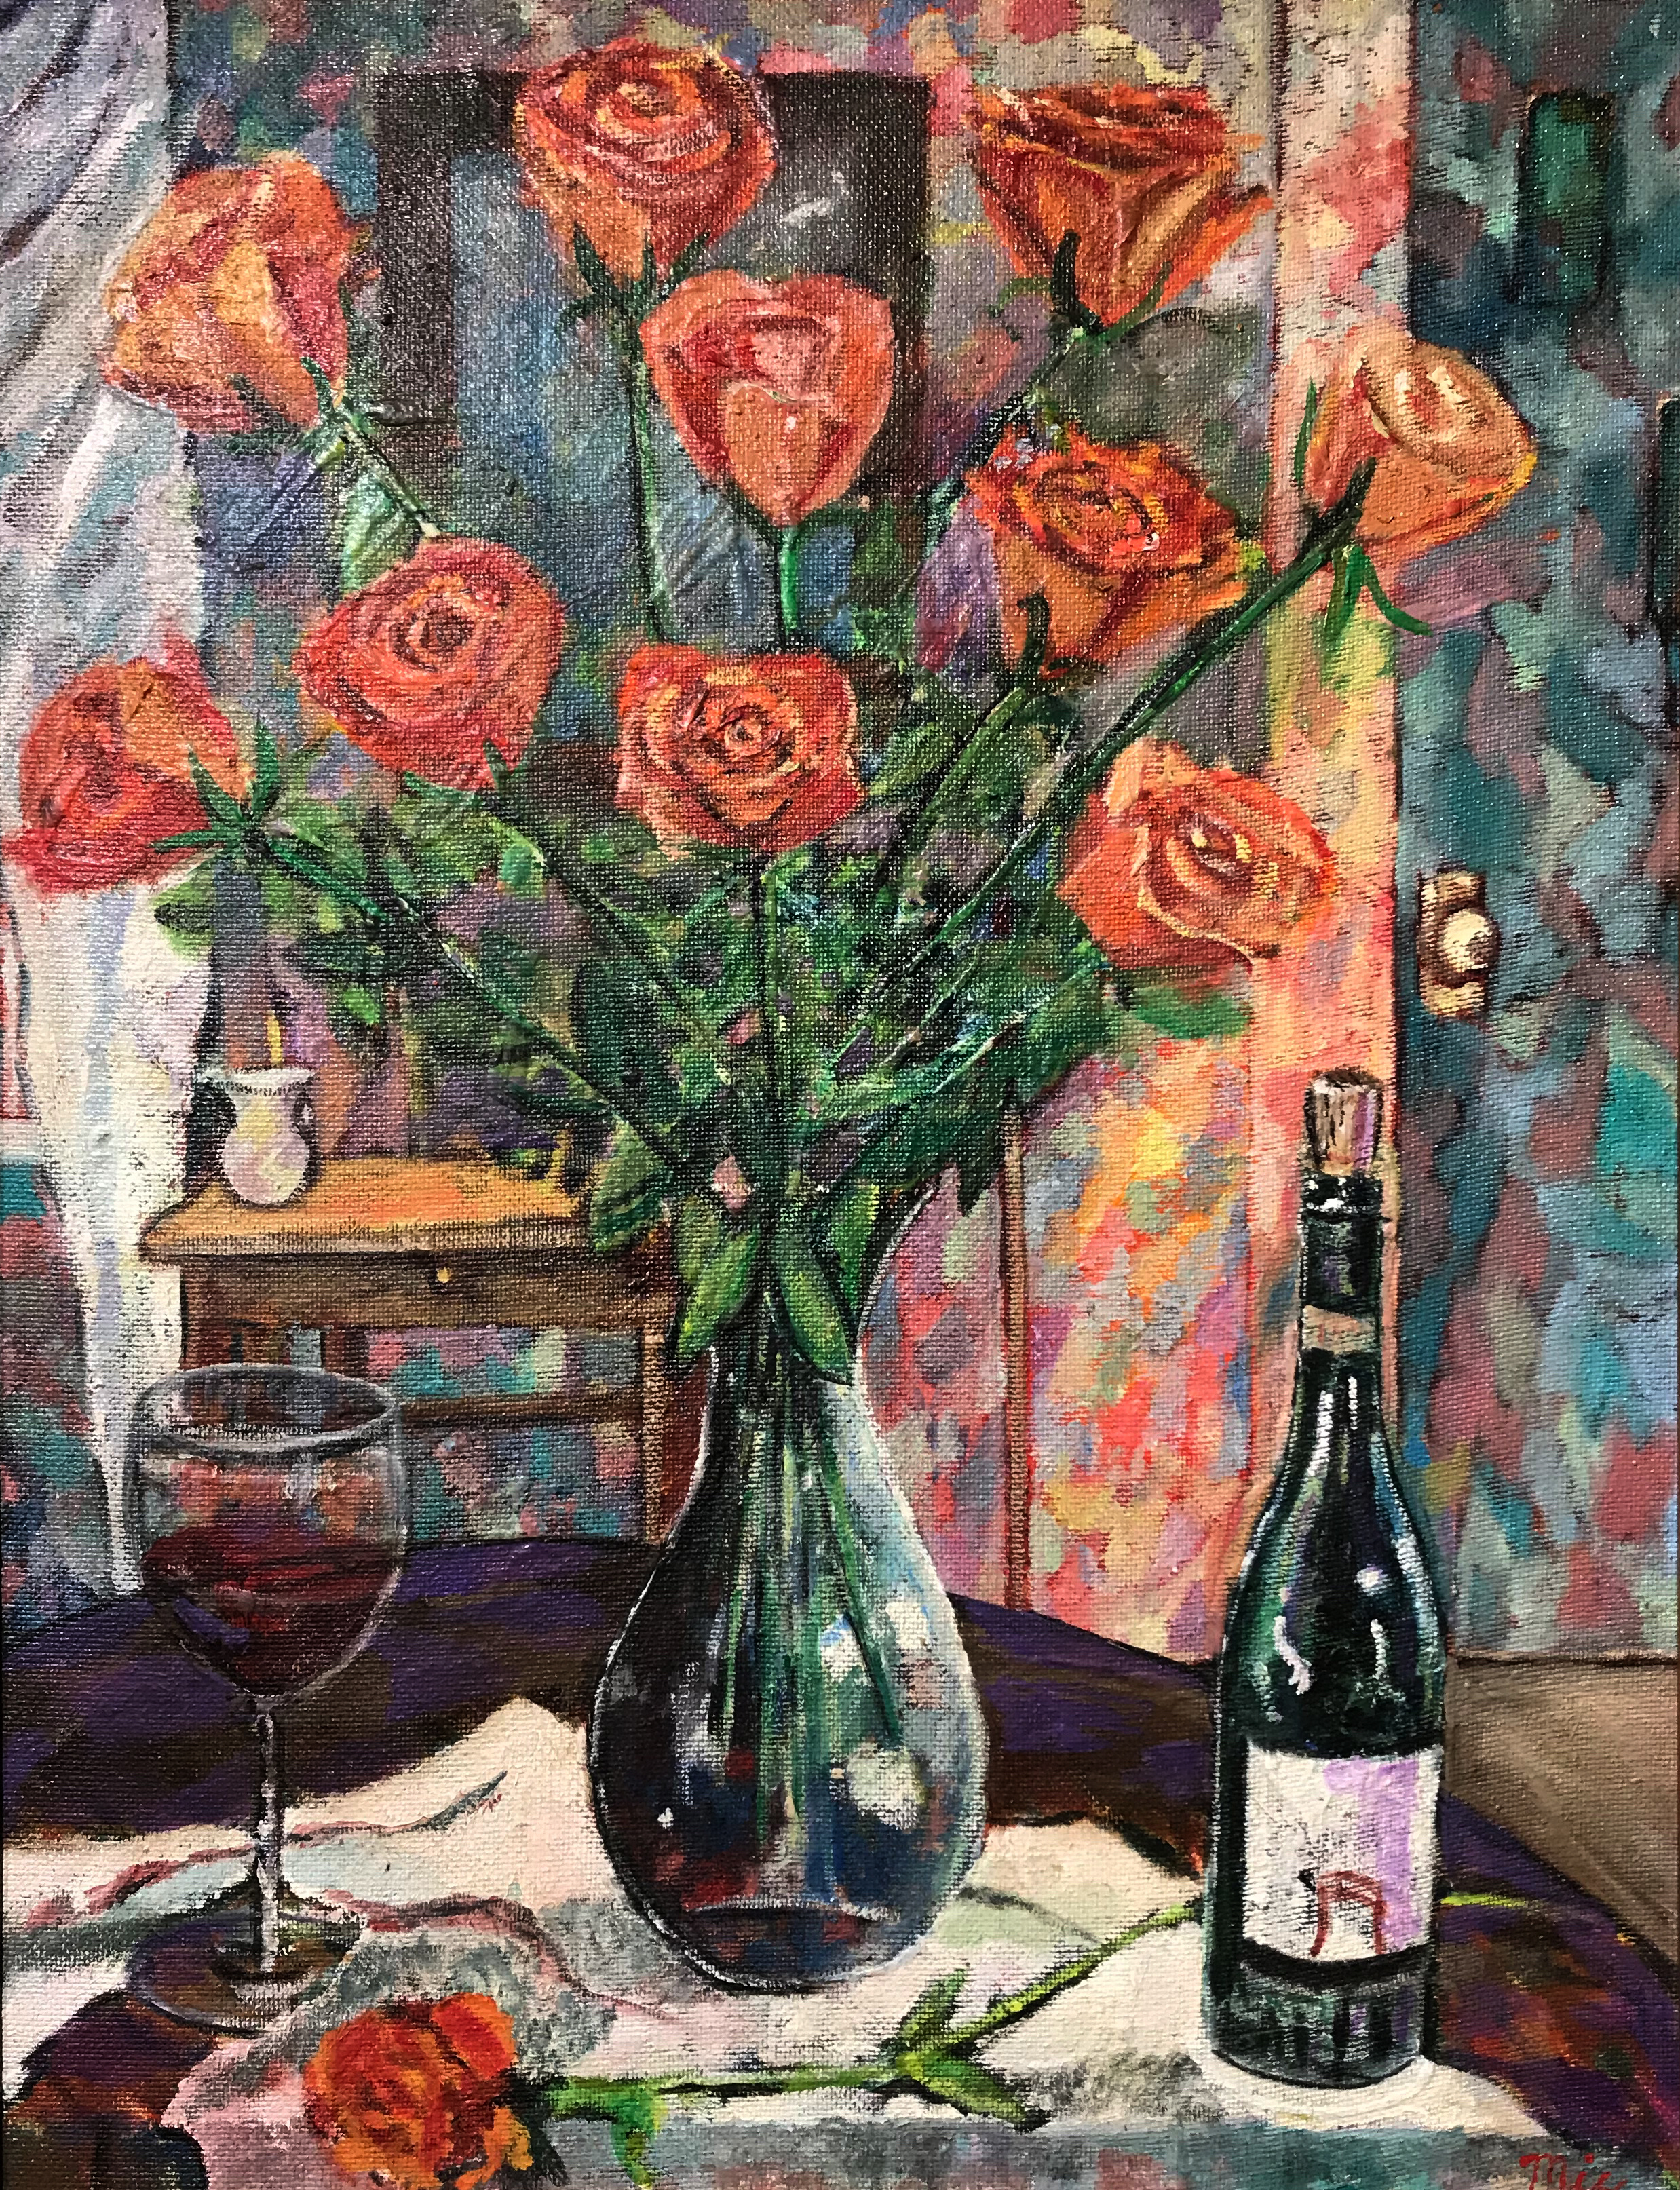 Orange Roses and Sagrantino di MonteFalco - Oil; on panel Private collection Cascade Art GalleryGiclee Limited Edition and canvas prints are available. Please visit the prints gallery.